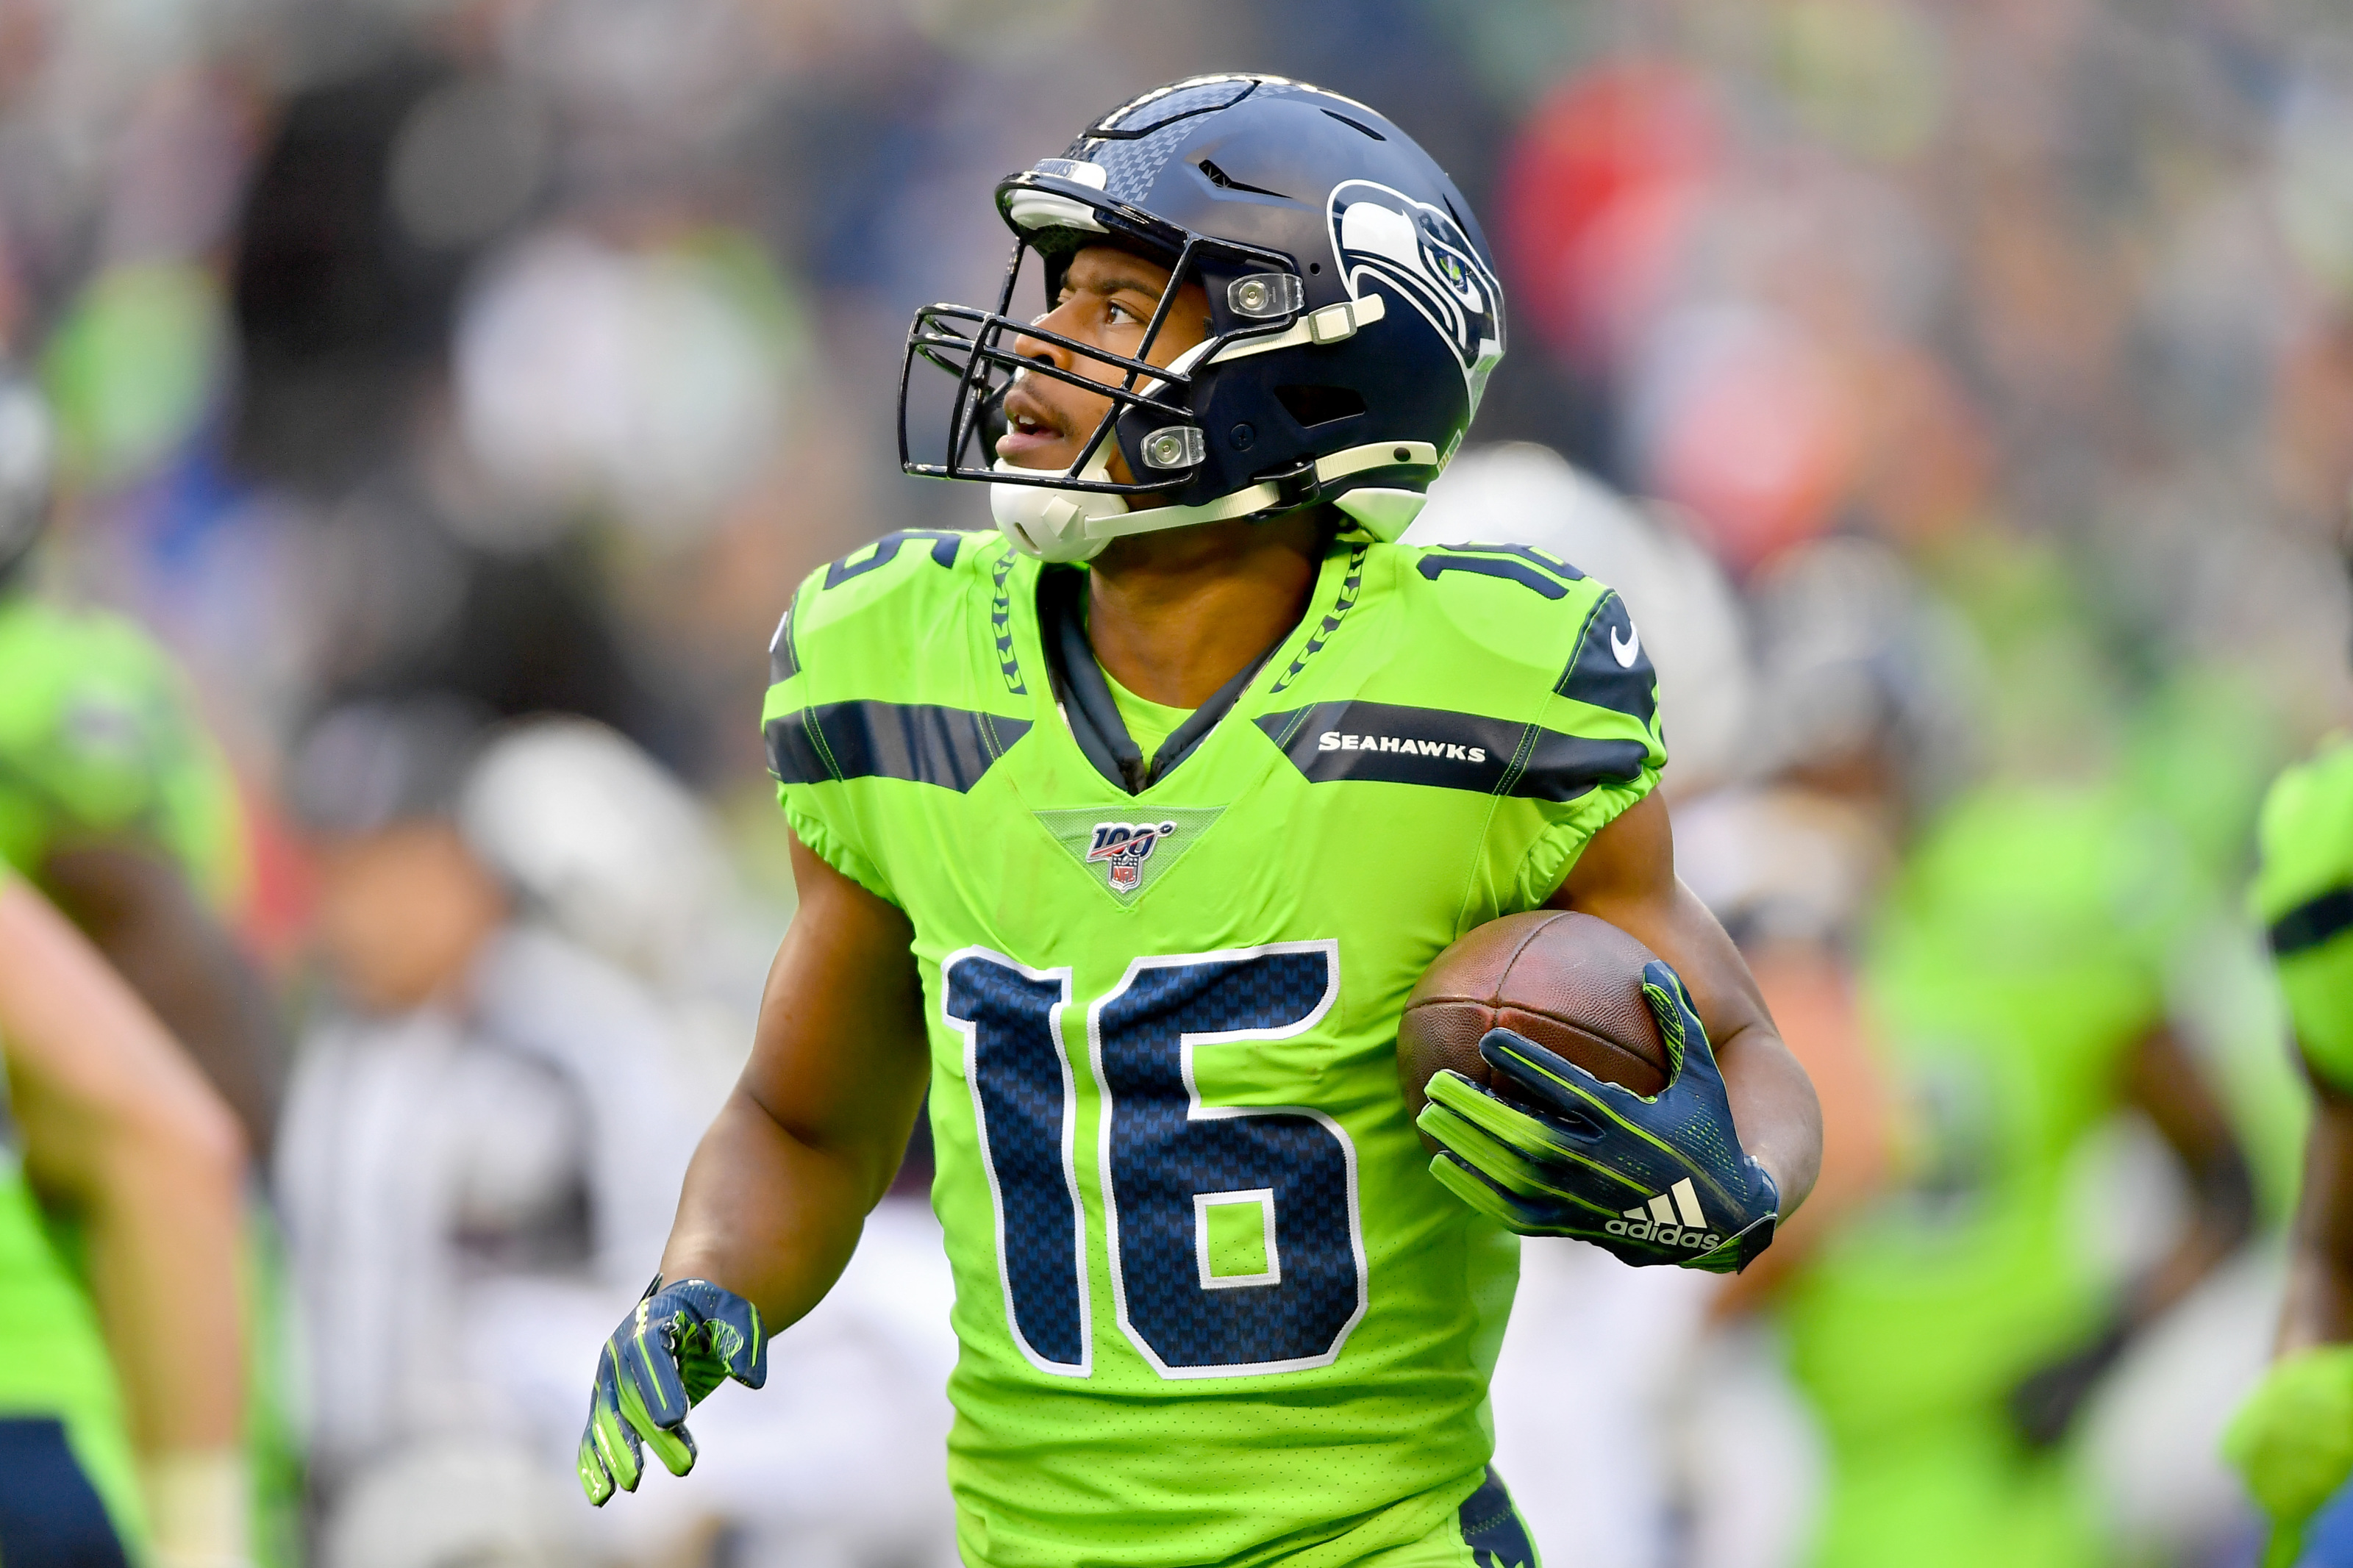 Seahawks Versus Rams Tyler Lockett And The Amazing Play